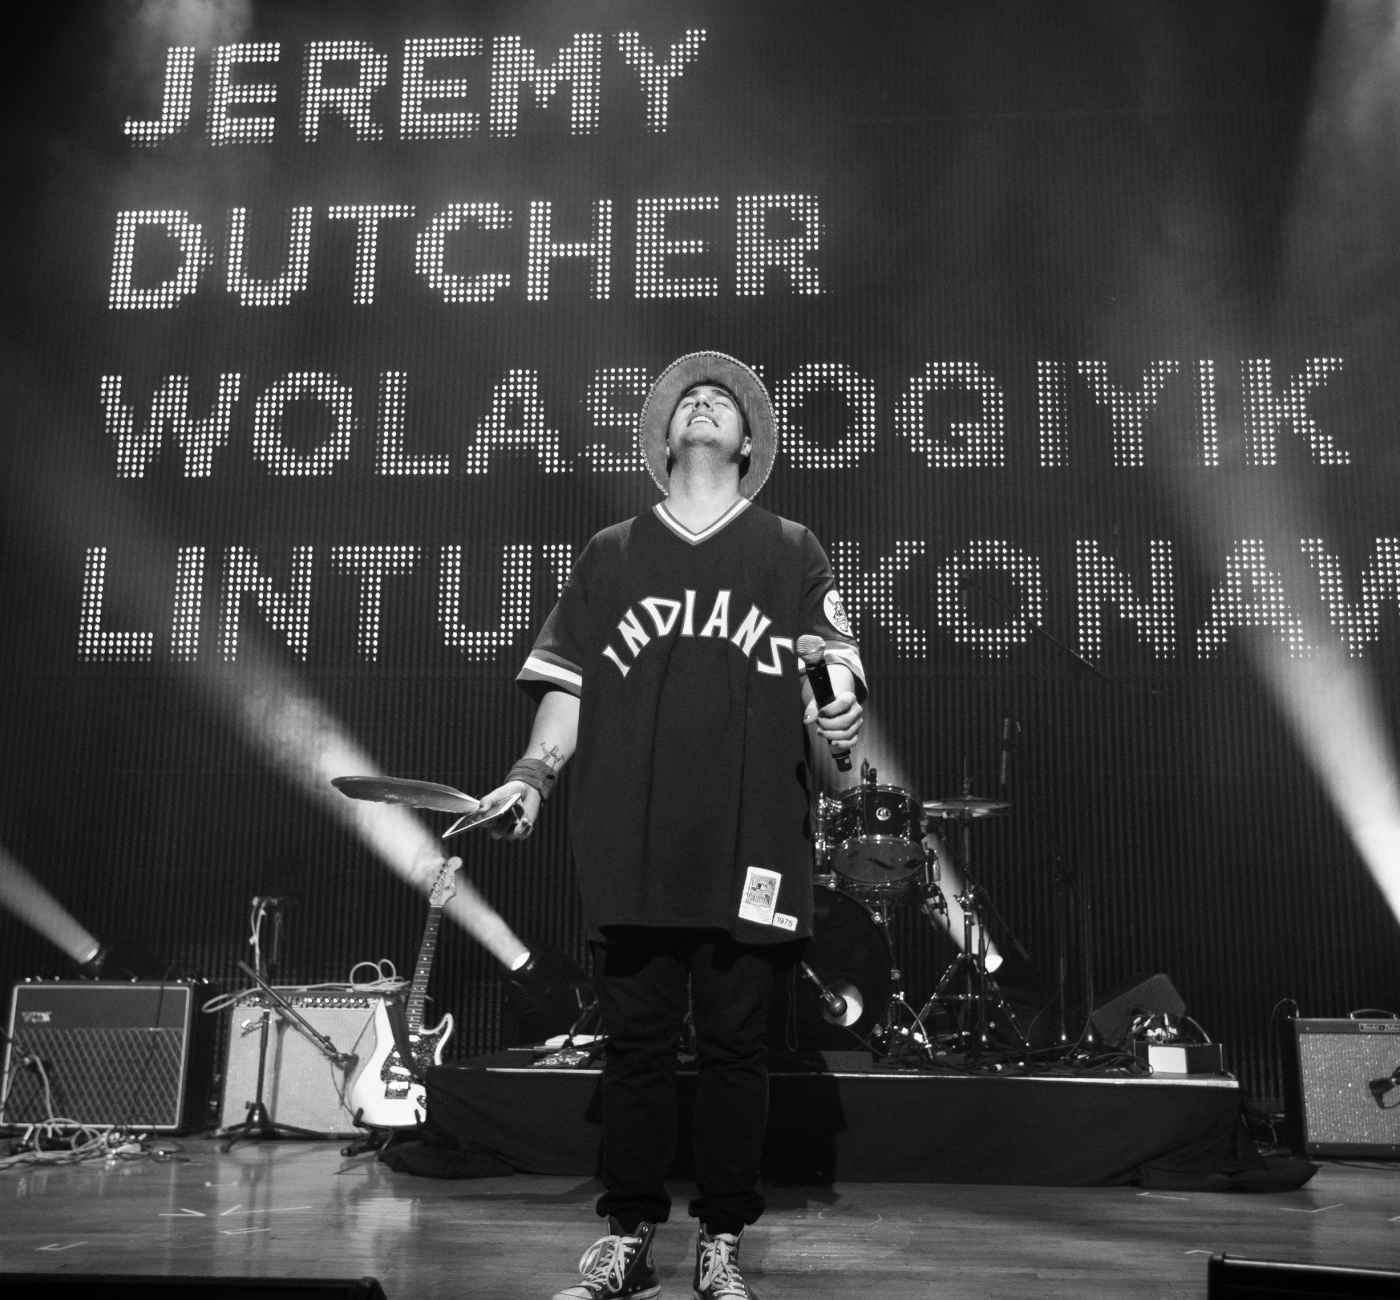 """Man stands on stage looking up smiling, he is wearing a sports jersey with 'Indians' on it, jeans and sneakers. Behind him a drum set, guitars and speakers are set up, further back a large screen reads """"JEREMY DUTCHER WOLASTOQIYIK LINTUWAKONAWA"""". On the far left, a female announcer smiles towards the audience."""